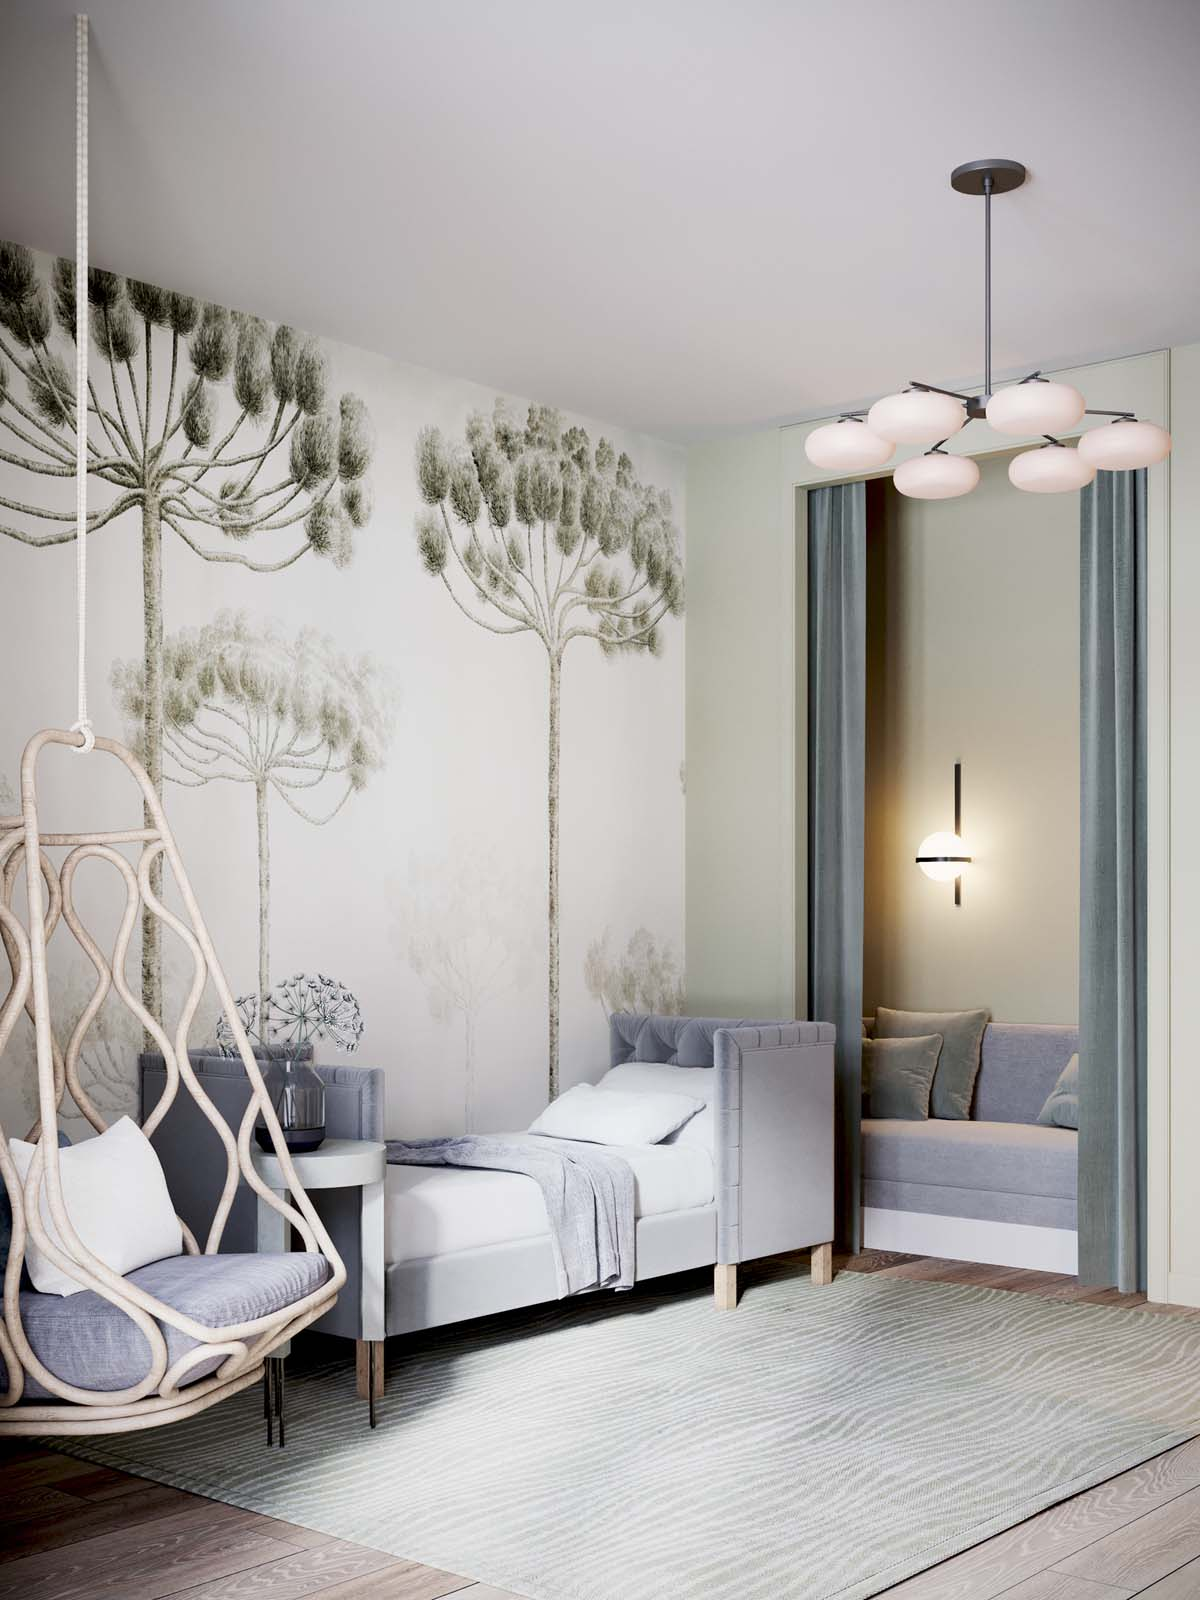 A Luxurious Home Interior with Pretty, Muted Pastel Colors images 25